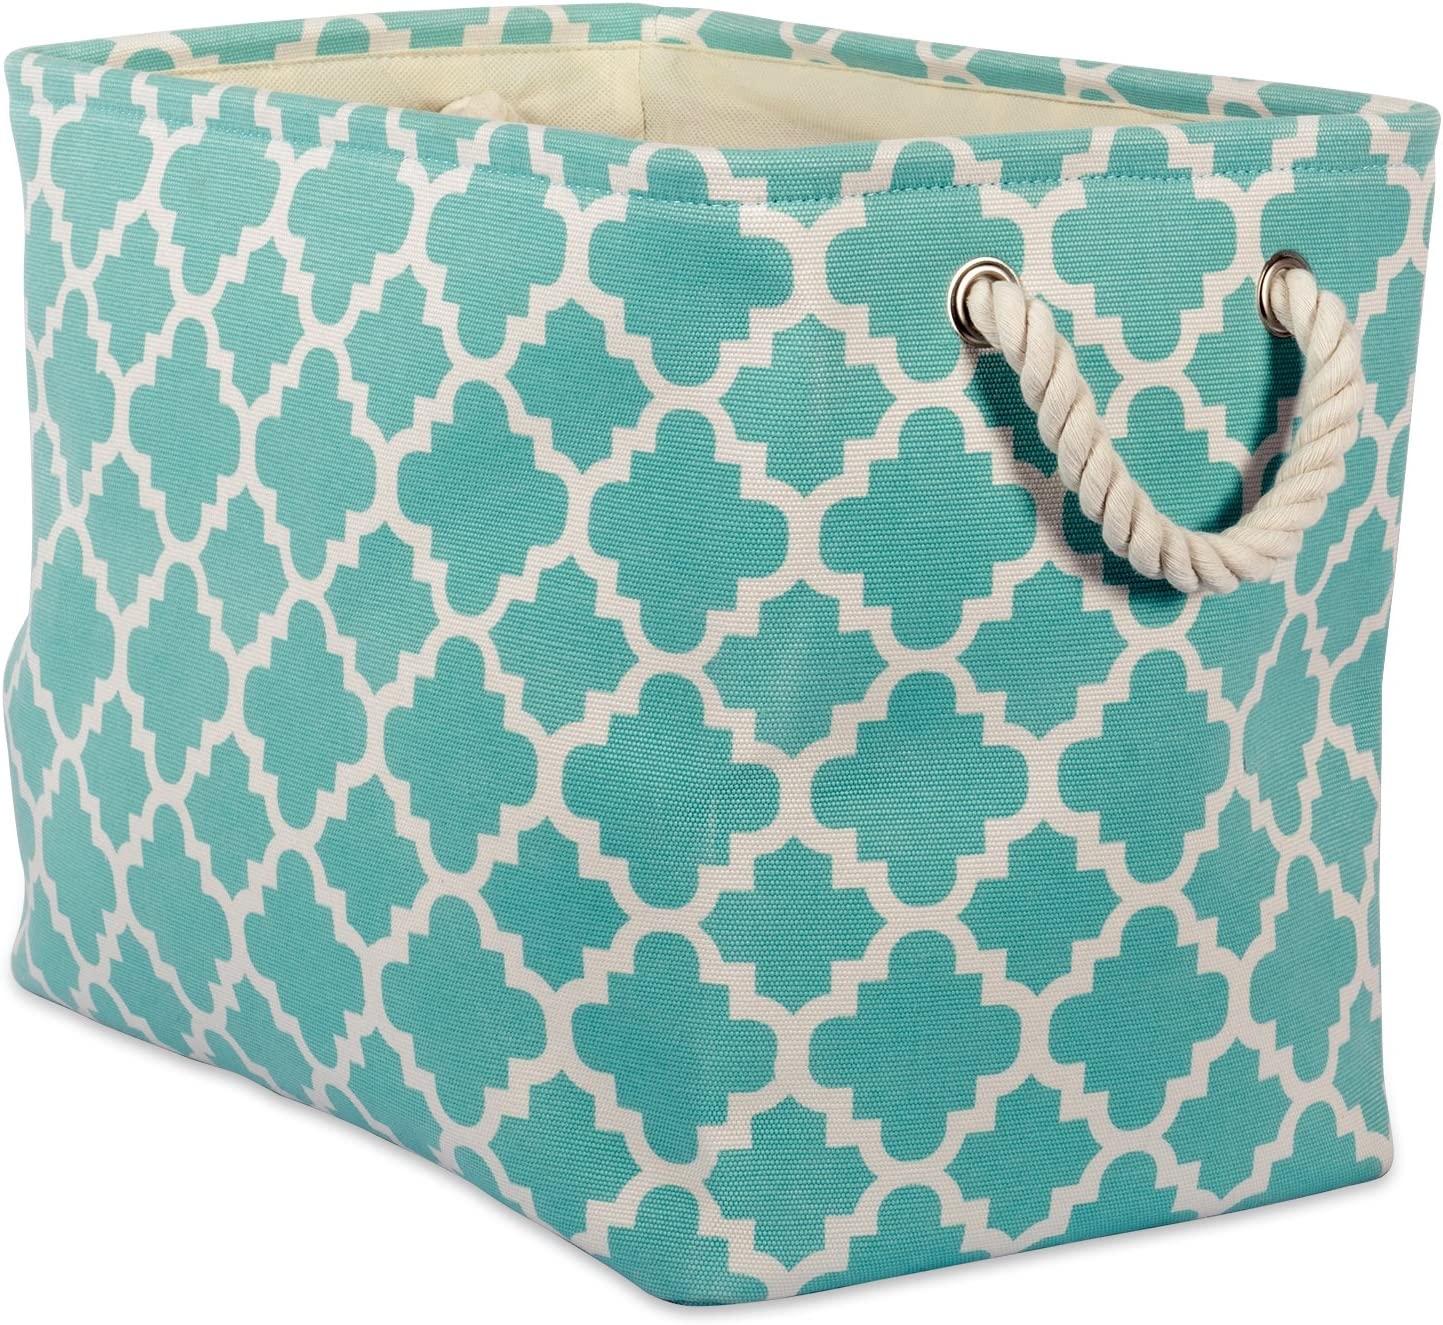 DII Printed Polyester Storage Bin  -Medium Rectangle, Aqua Lattice